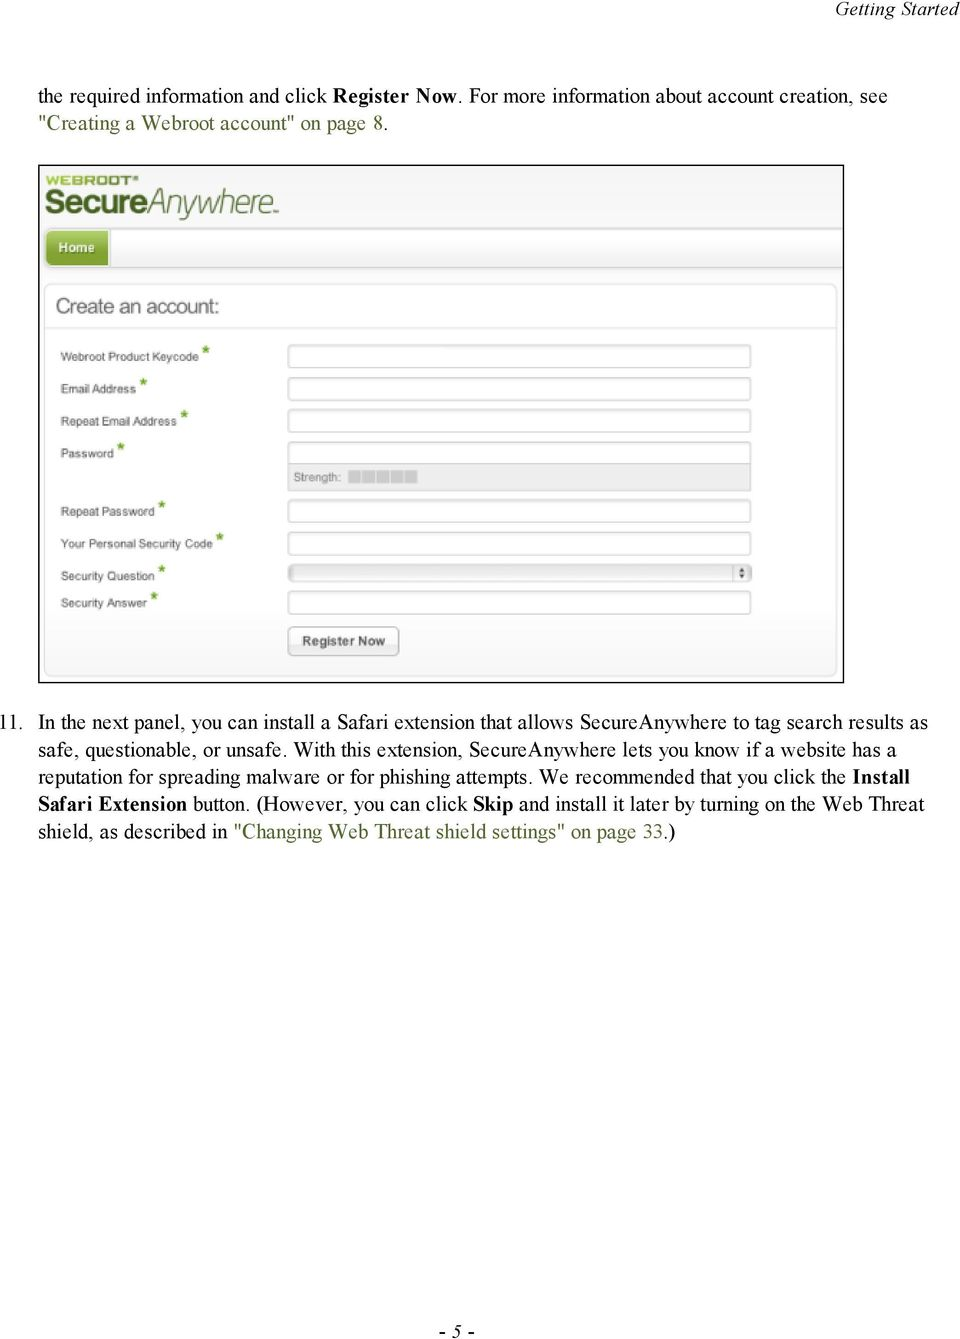 With this extension, SecureAnywhere lets you know if a website has a reputation for spreading malware or for phishing attempts.